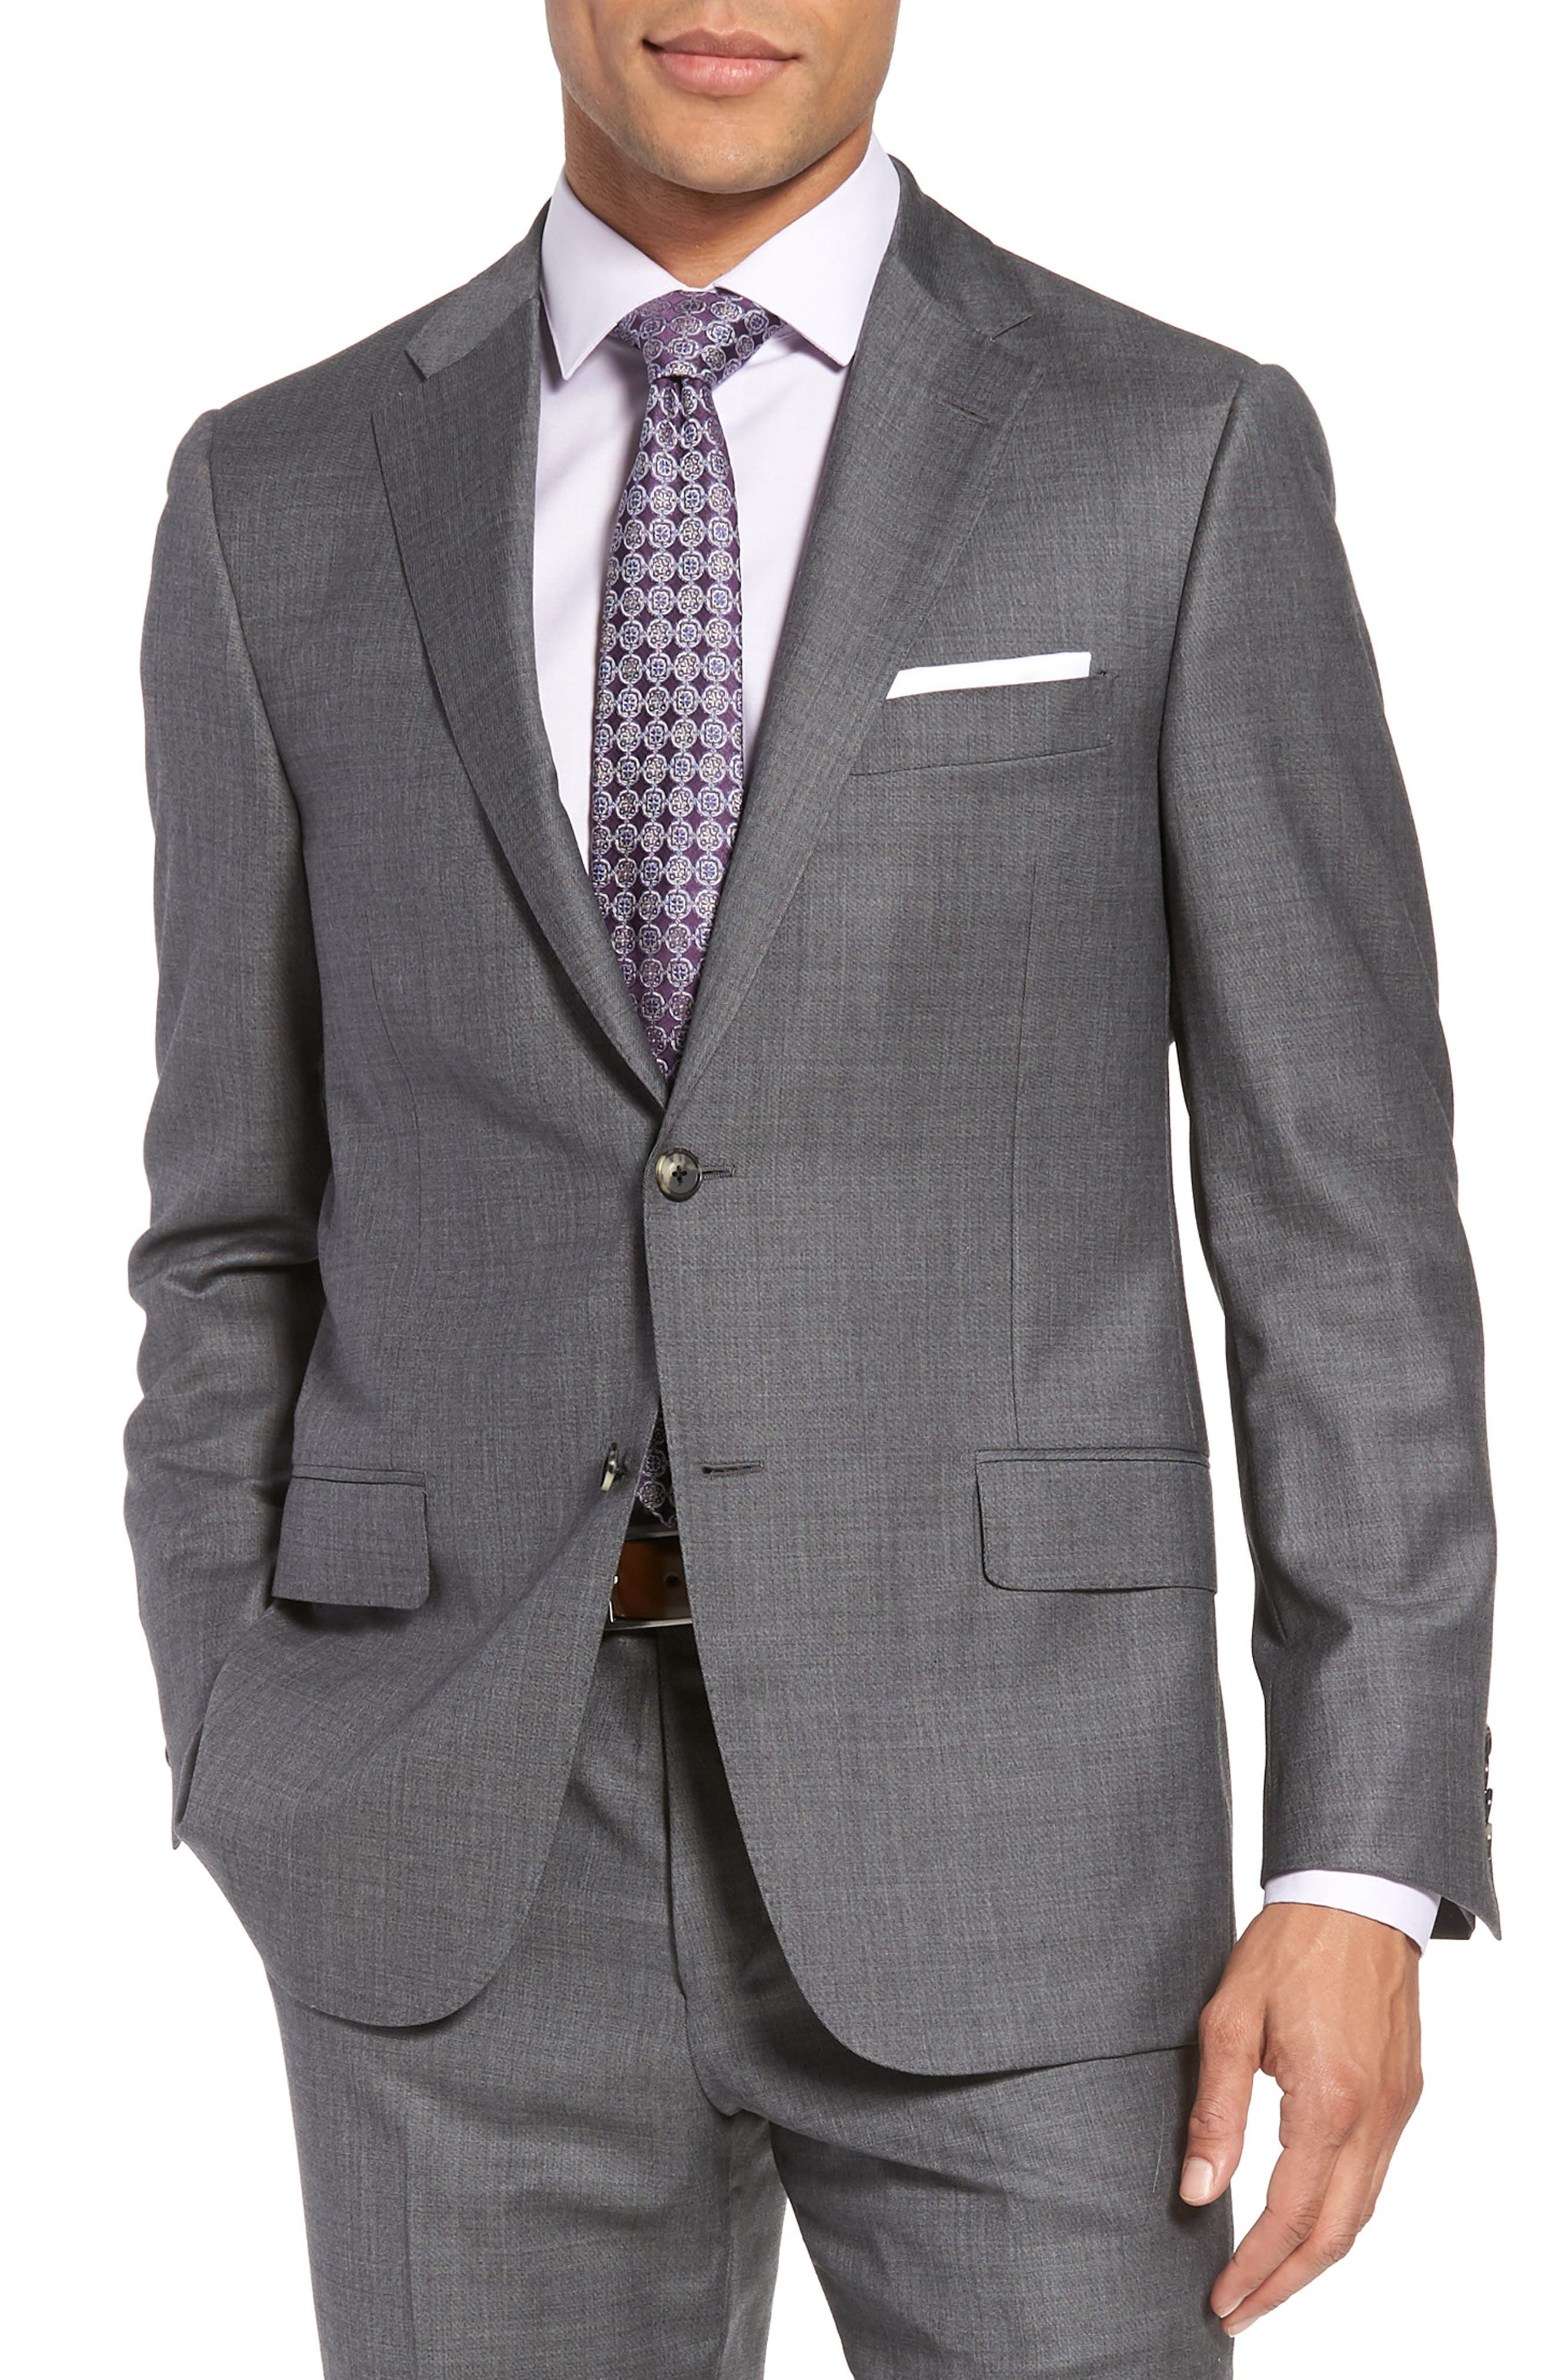 HICKEY FREEMAN,                             Classic B Fit Solid Wool Suit,                             Alternate thumbnail 5, color,                             020